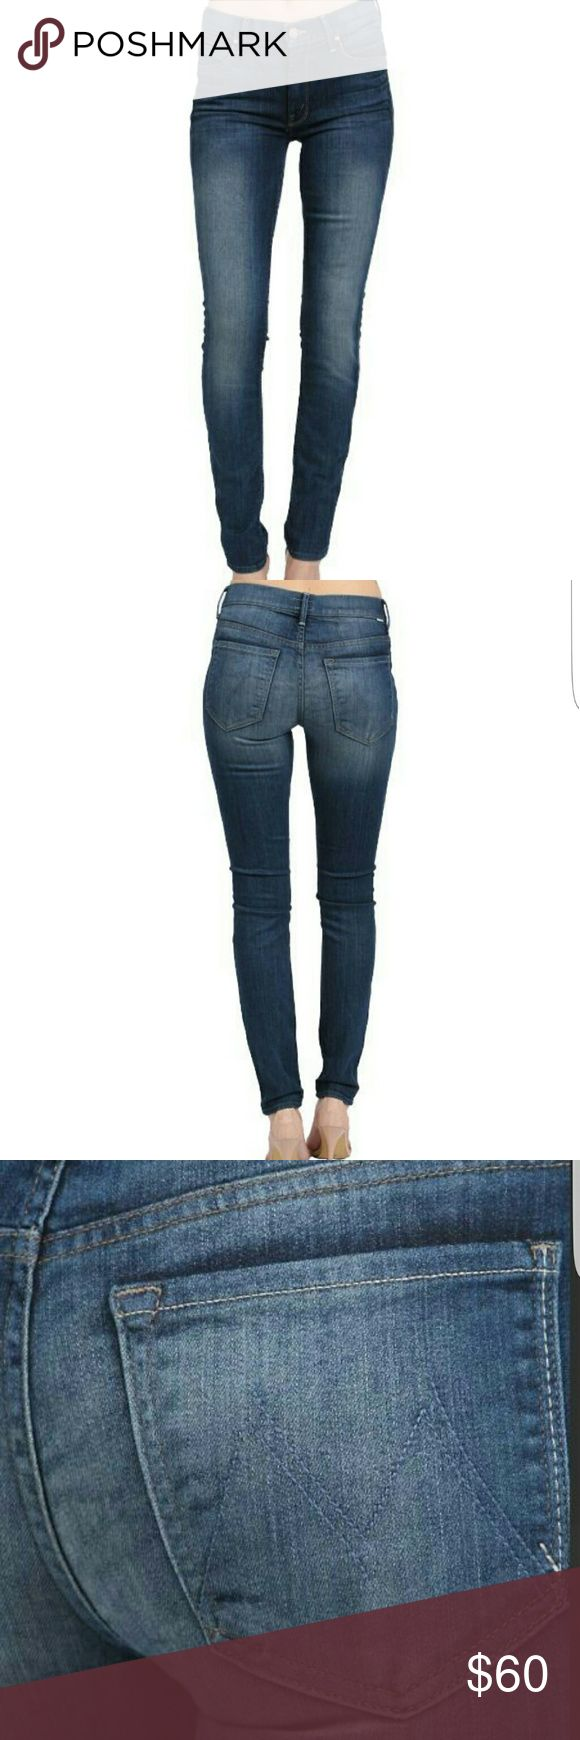 MOTHER JEAN THE MUSE( BITTEN AND SMITTEN) 28 GRAAT CONDITION, LIKE NEW WHISKERING ON FRONT A LONG POCKETS SLIM, SKINNY MOTHER Jeans